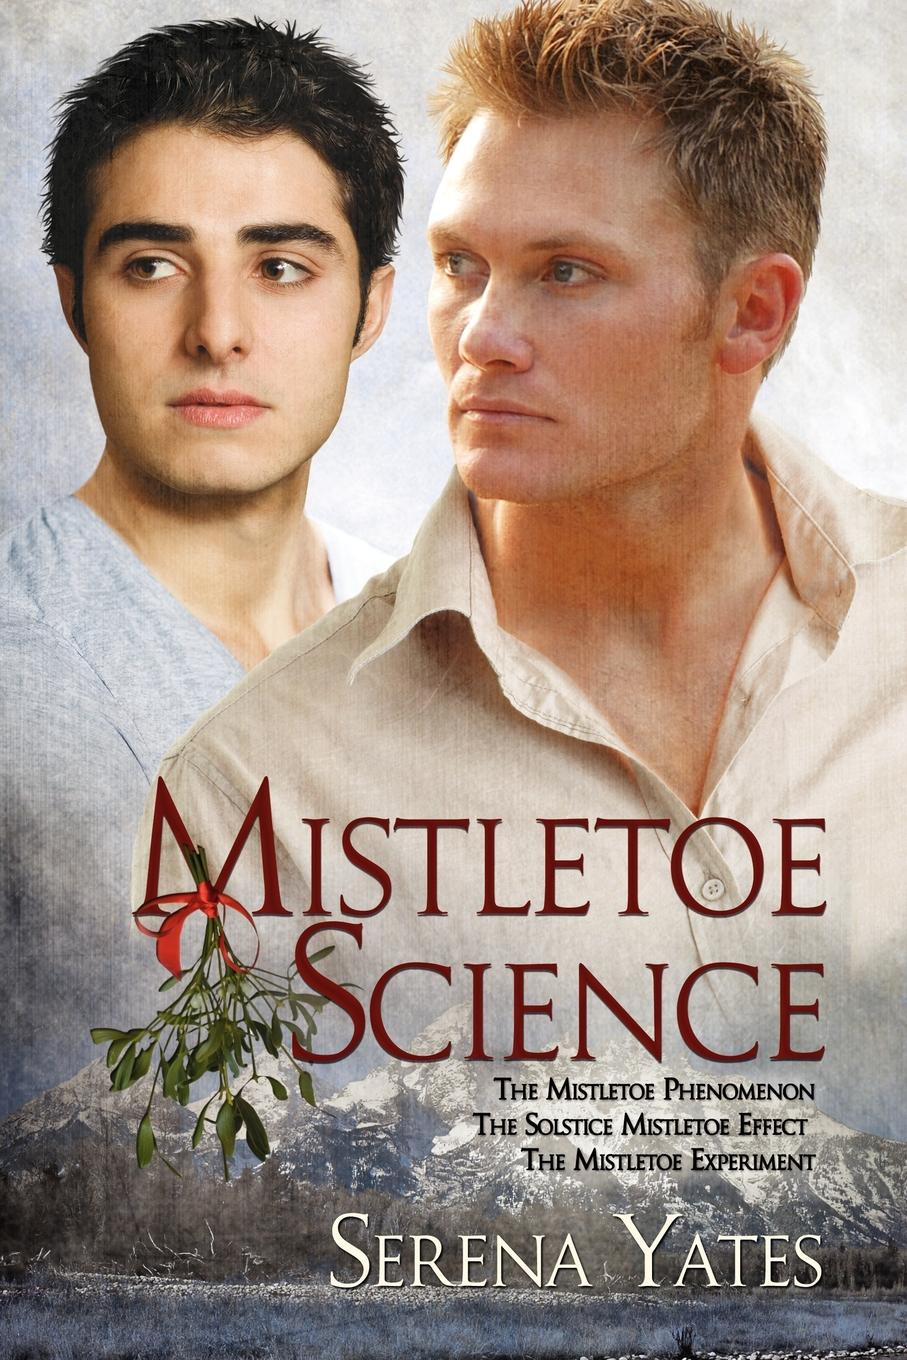 Serena Yates Mistletoe Science